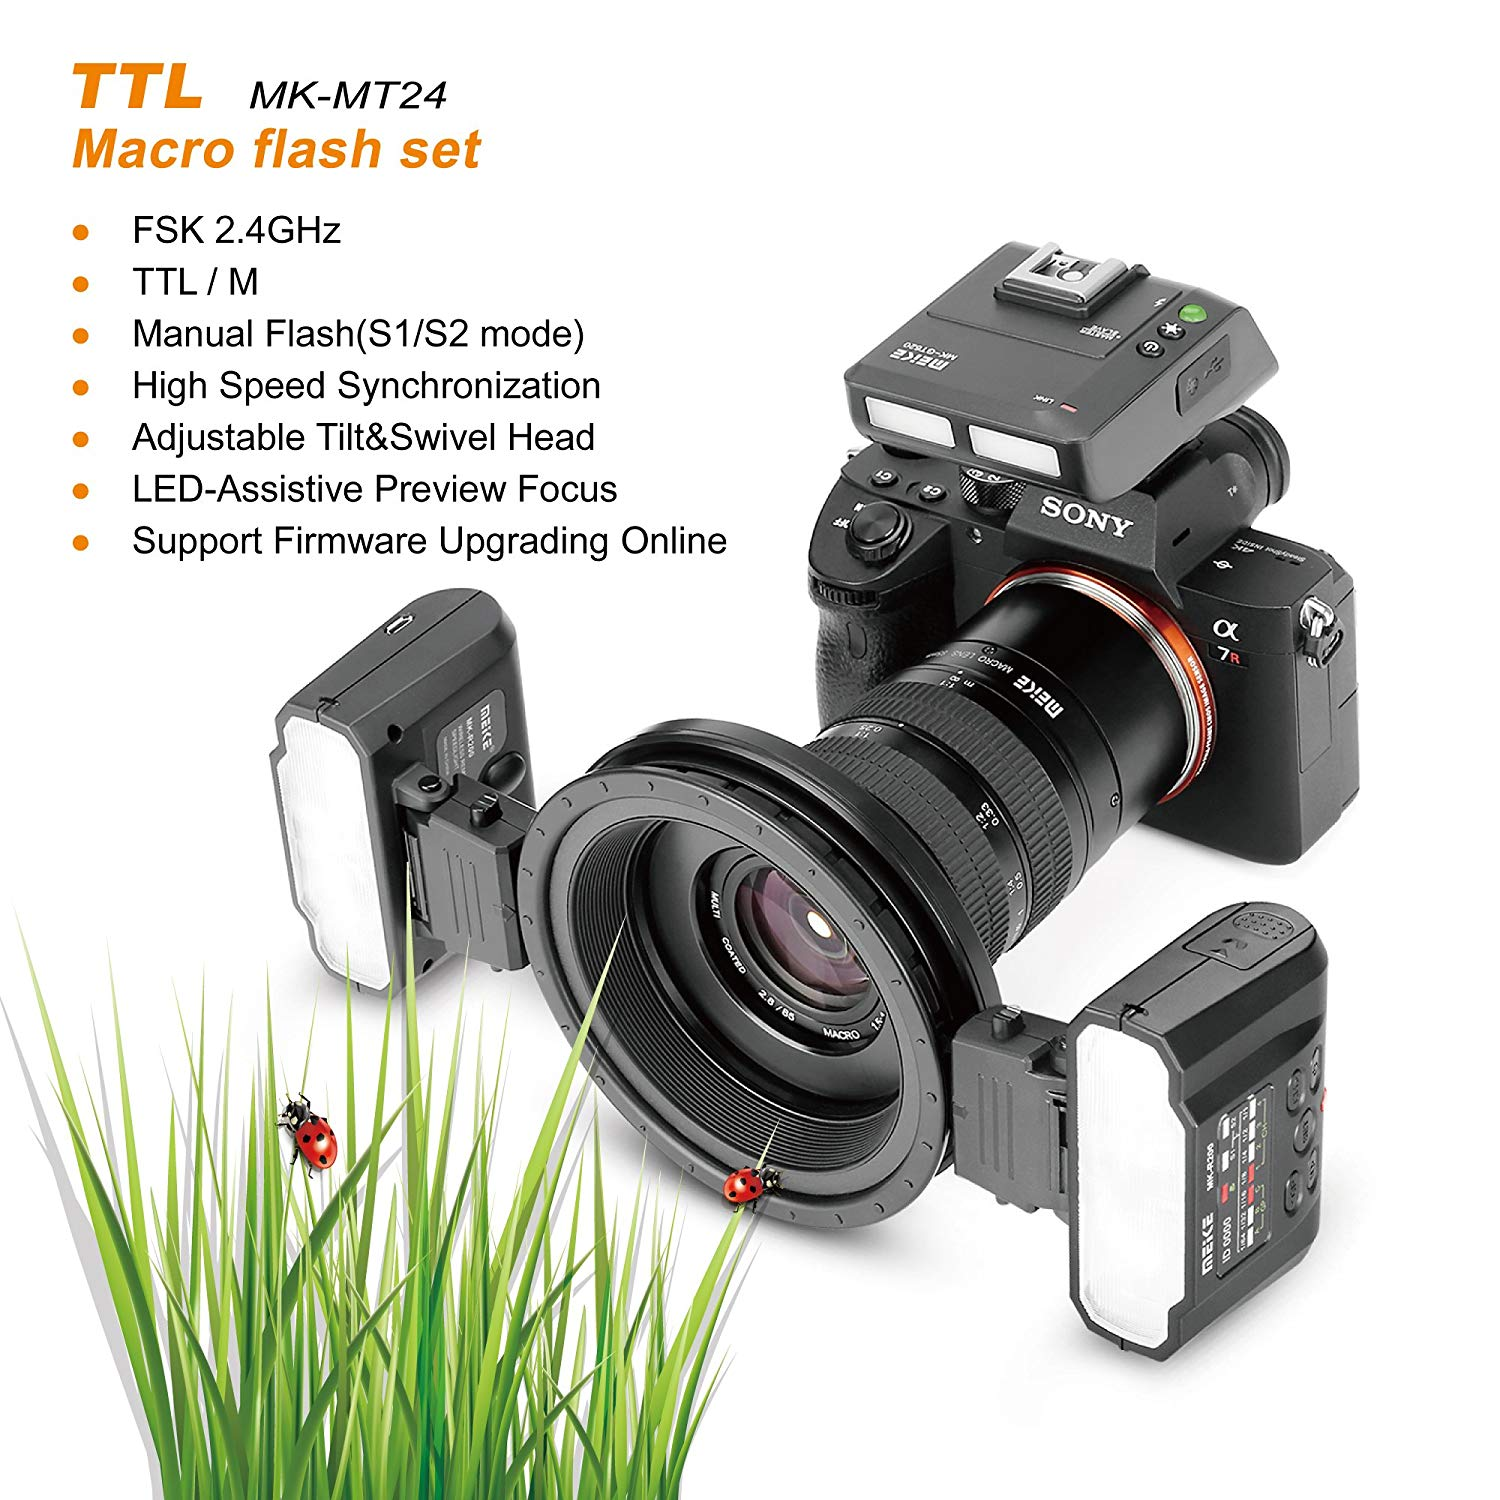 US $299 0 15% OFF Meike MK MT24S Macro Twin Lite Flash Light for Sony A9  A7III A7RIII and other MI Hot Shoe Mount Mirrorless Cameras Free  Shipping-in